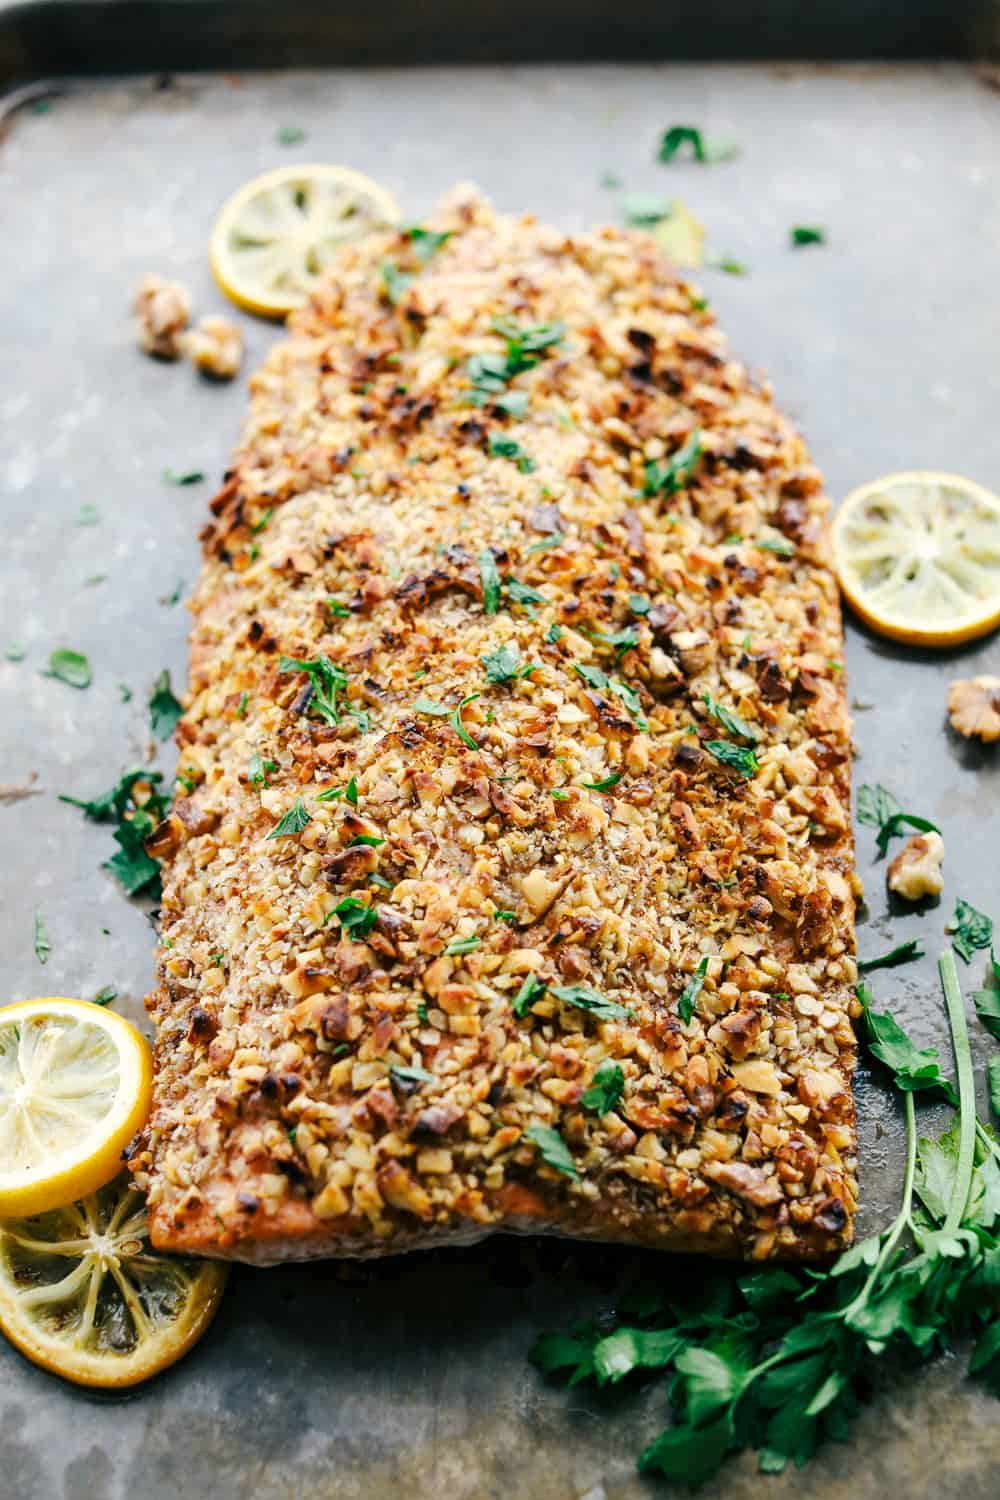 Walnut crusted maple salmon baked